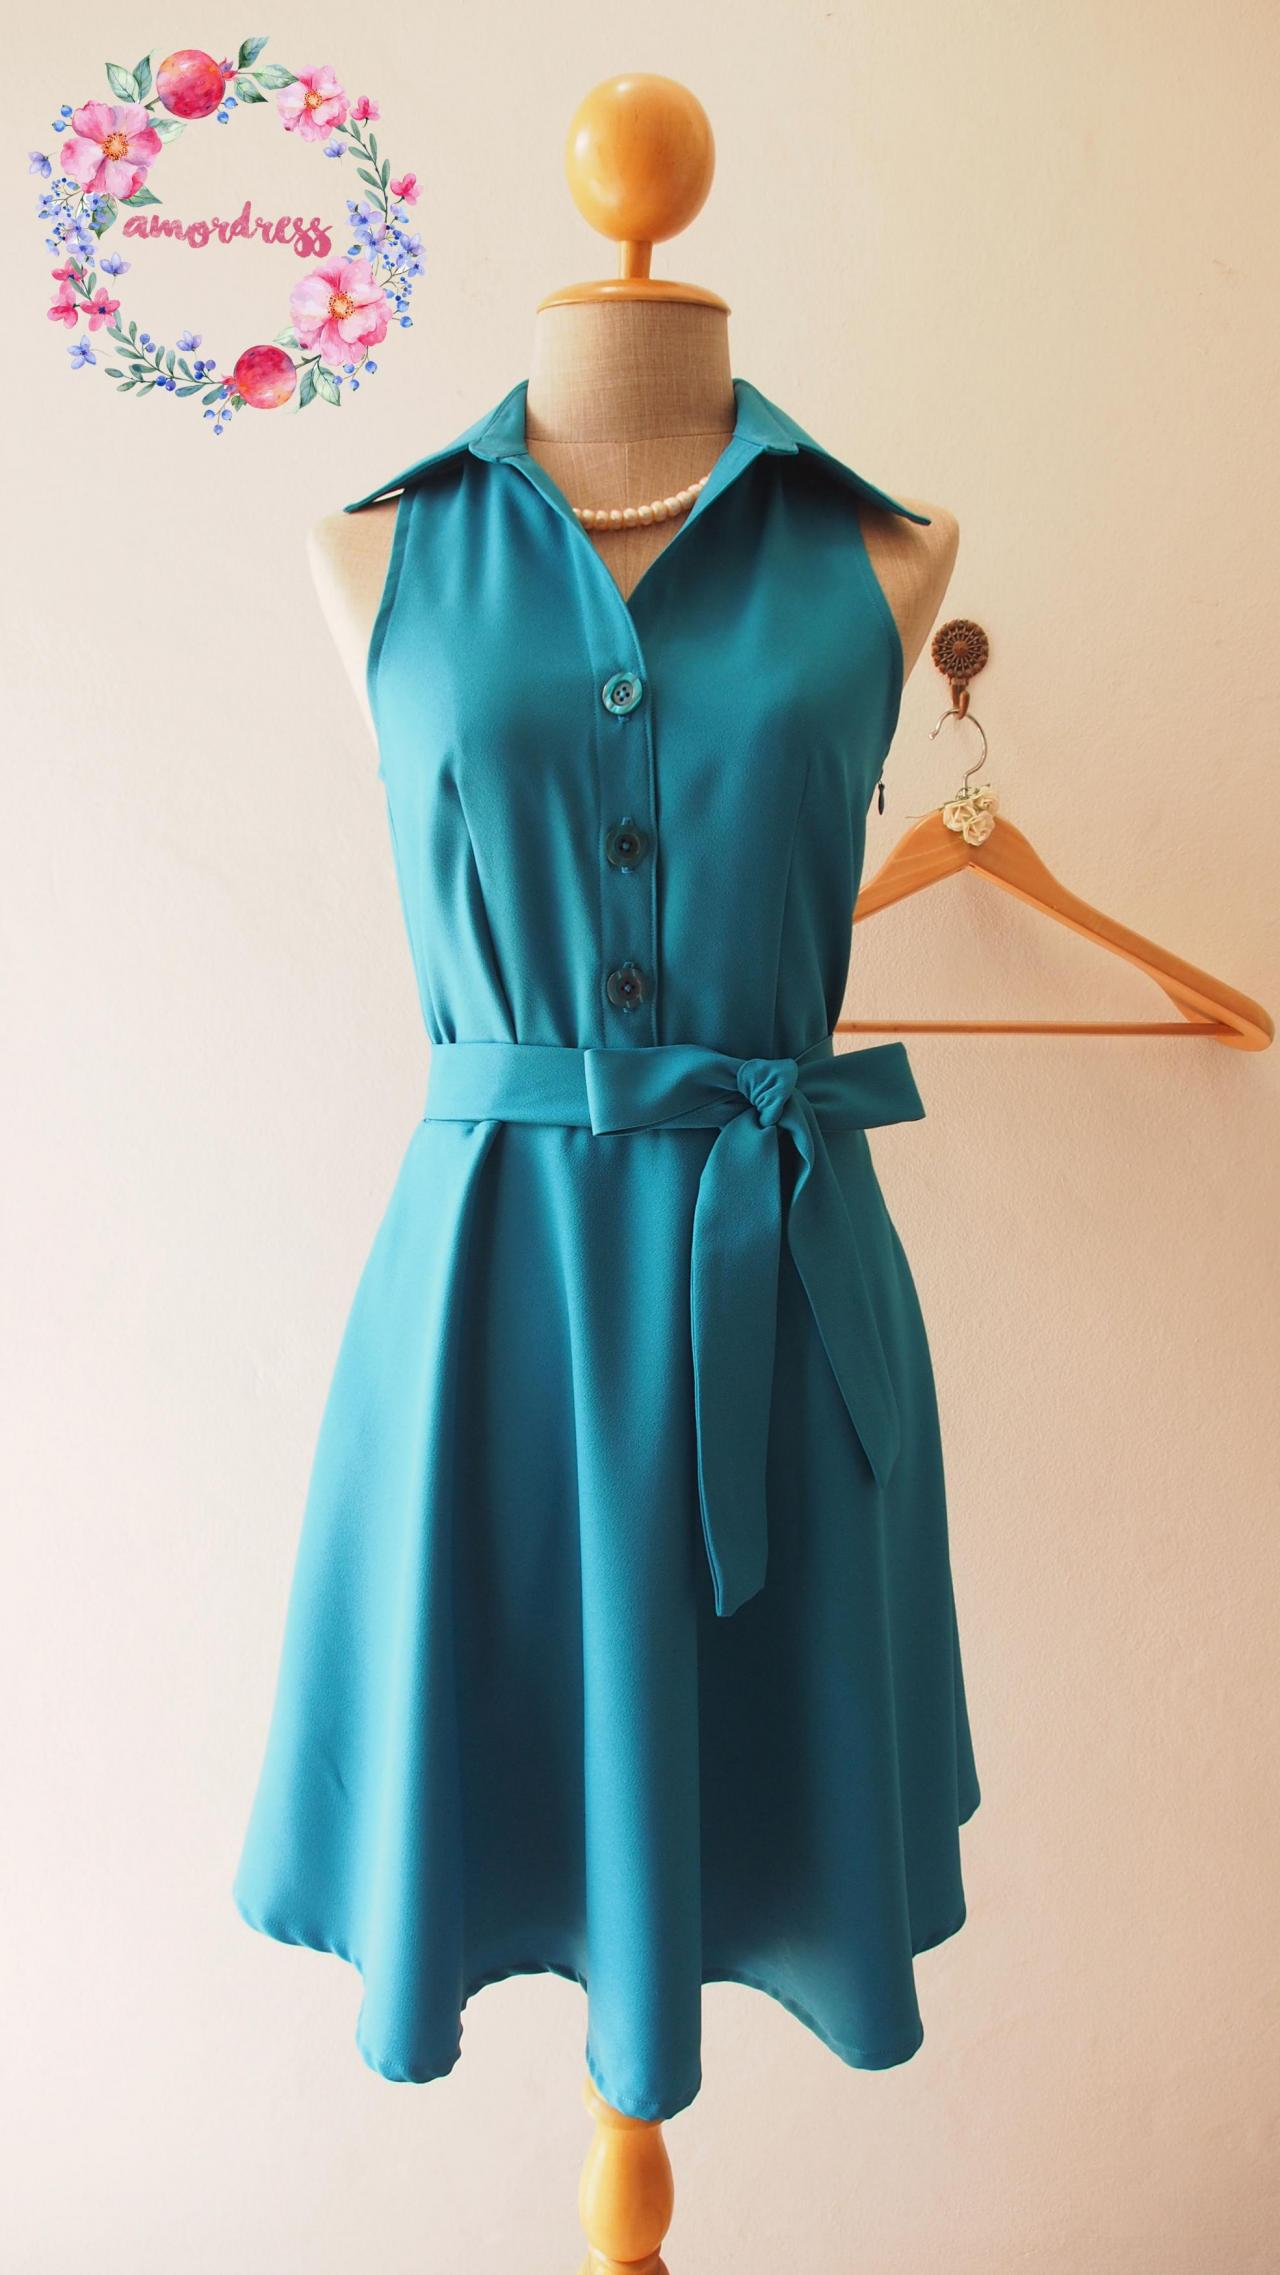 Teal Dress, Teal Bridesmaid Dress, Teal Summer Dress, Shirt Dress, Skater Dress, Midi Dress, Red Sundress, Vintage Inspired Dress, - DOWNTOWN - XS-XL, Custom